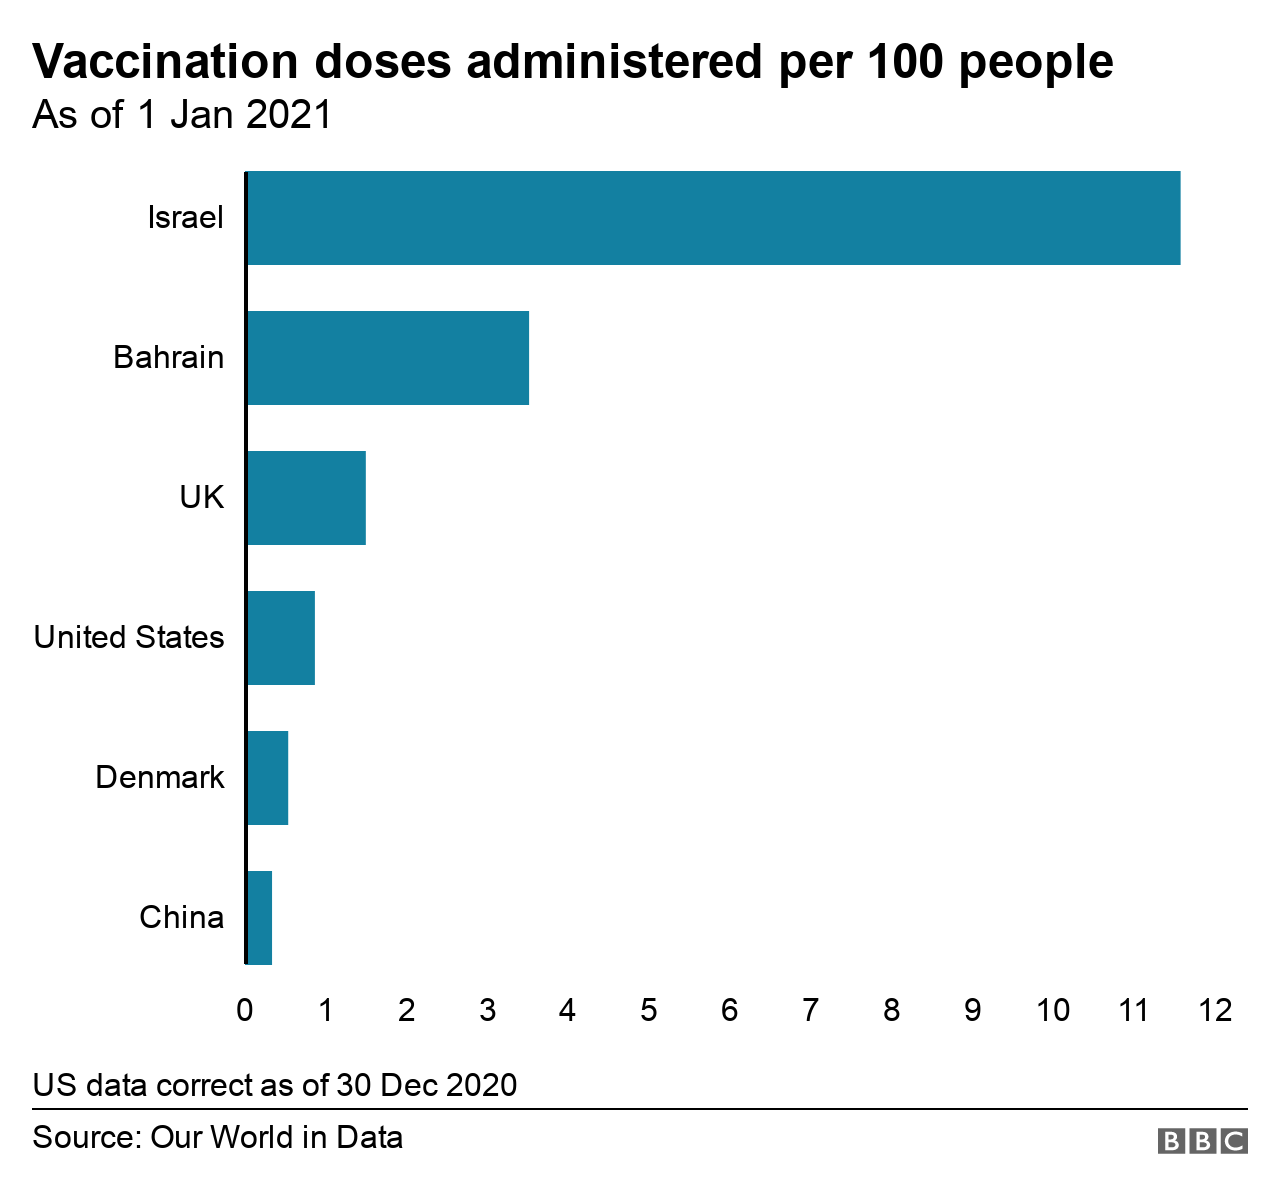 Graph showing vaccine doses administered